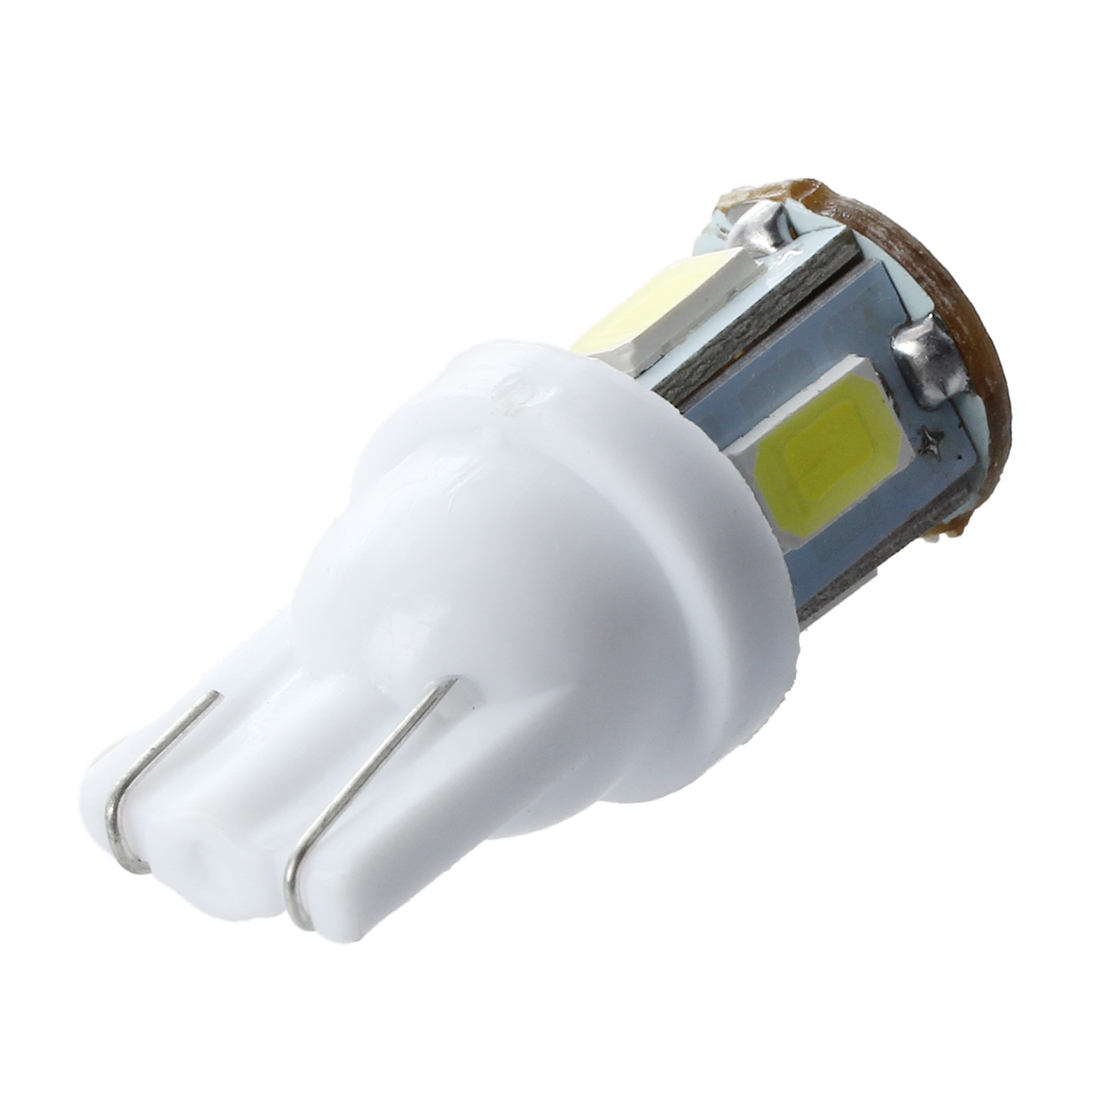 10 x t10 5630 smd 5 led ampoule bulb lampe lumiere blanc dc 12v voiture wt ebay. Black Bedroom Furniture Sets. Home Design Ideas